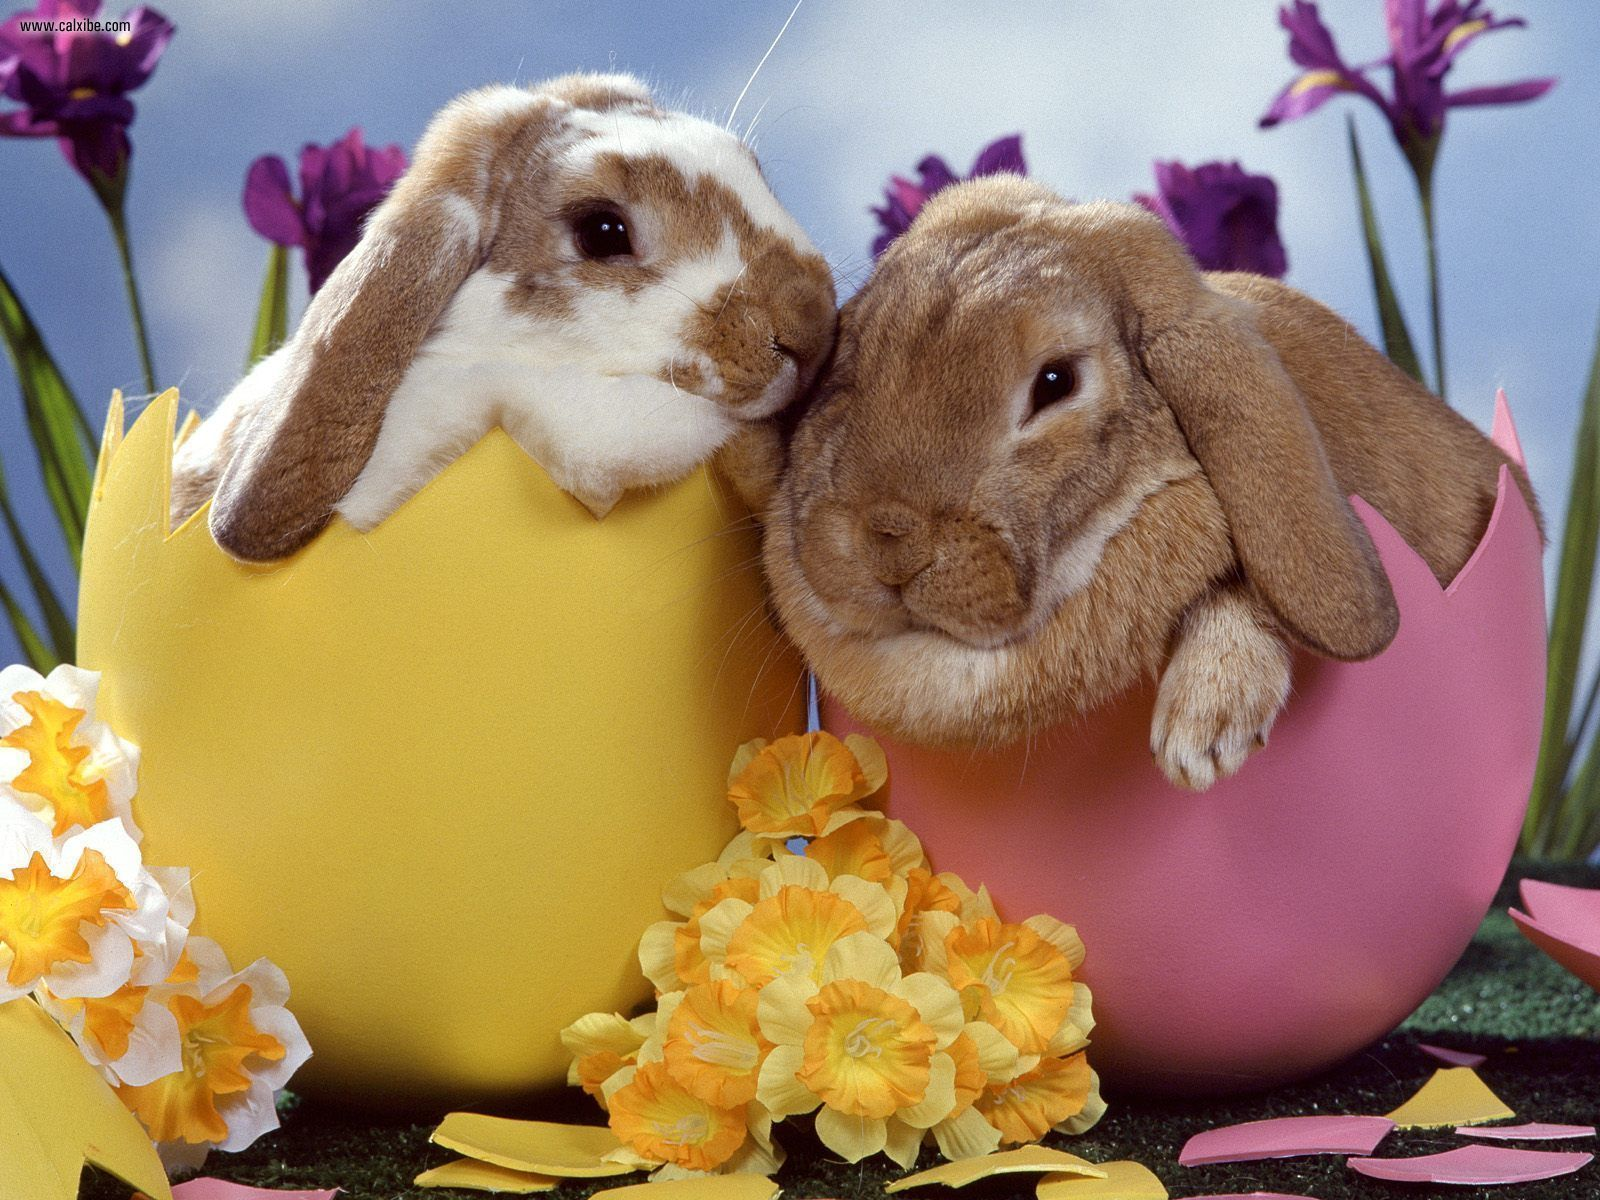 The Easter Bunny | Fascinating Animals